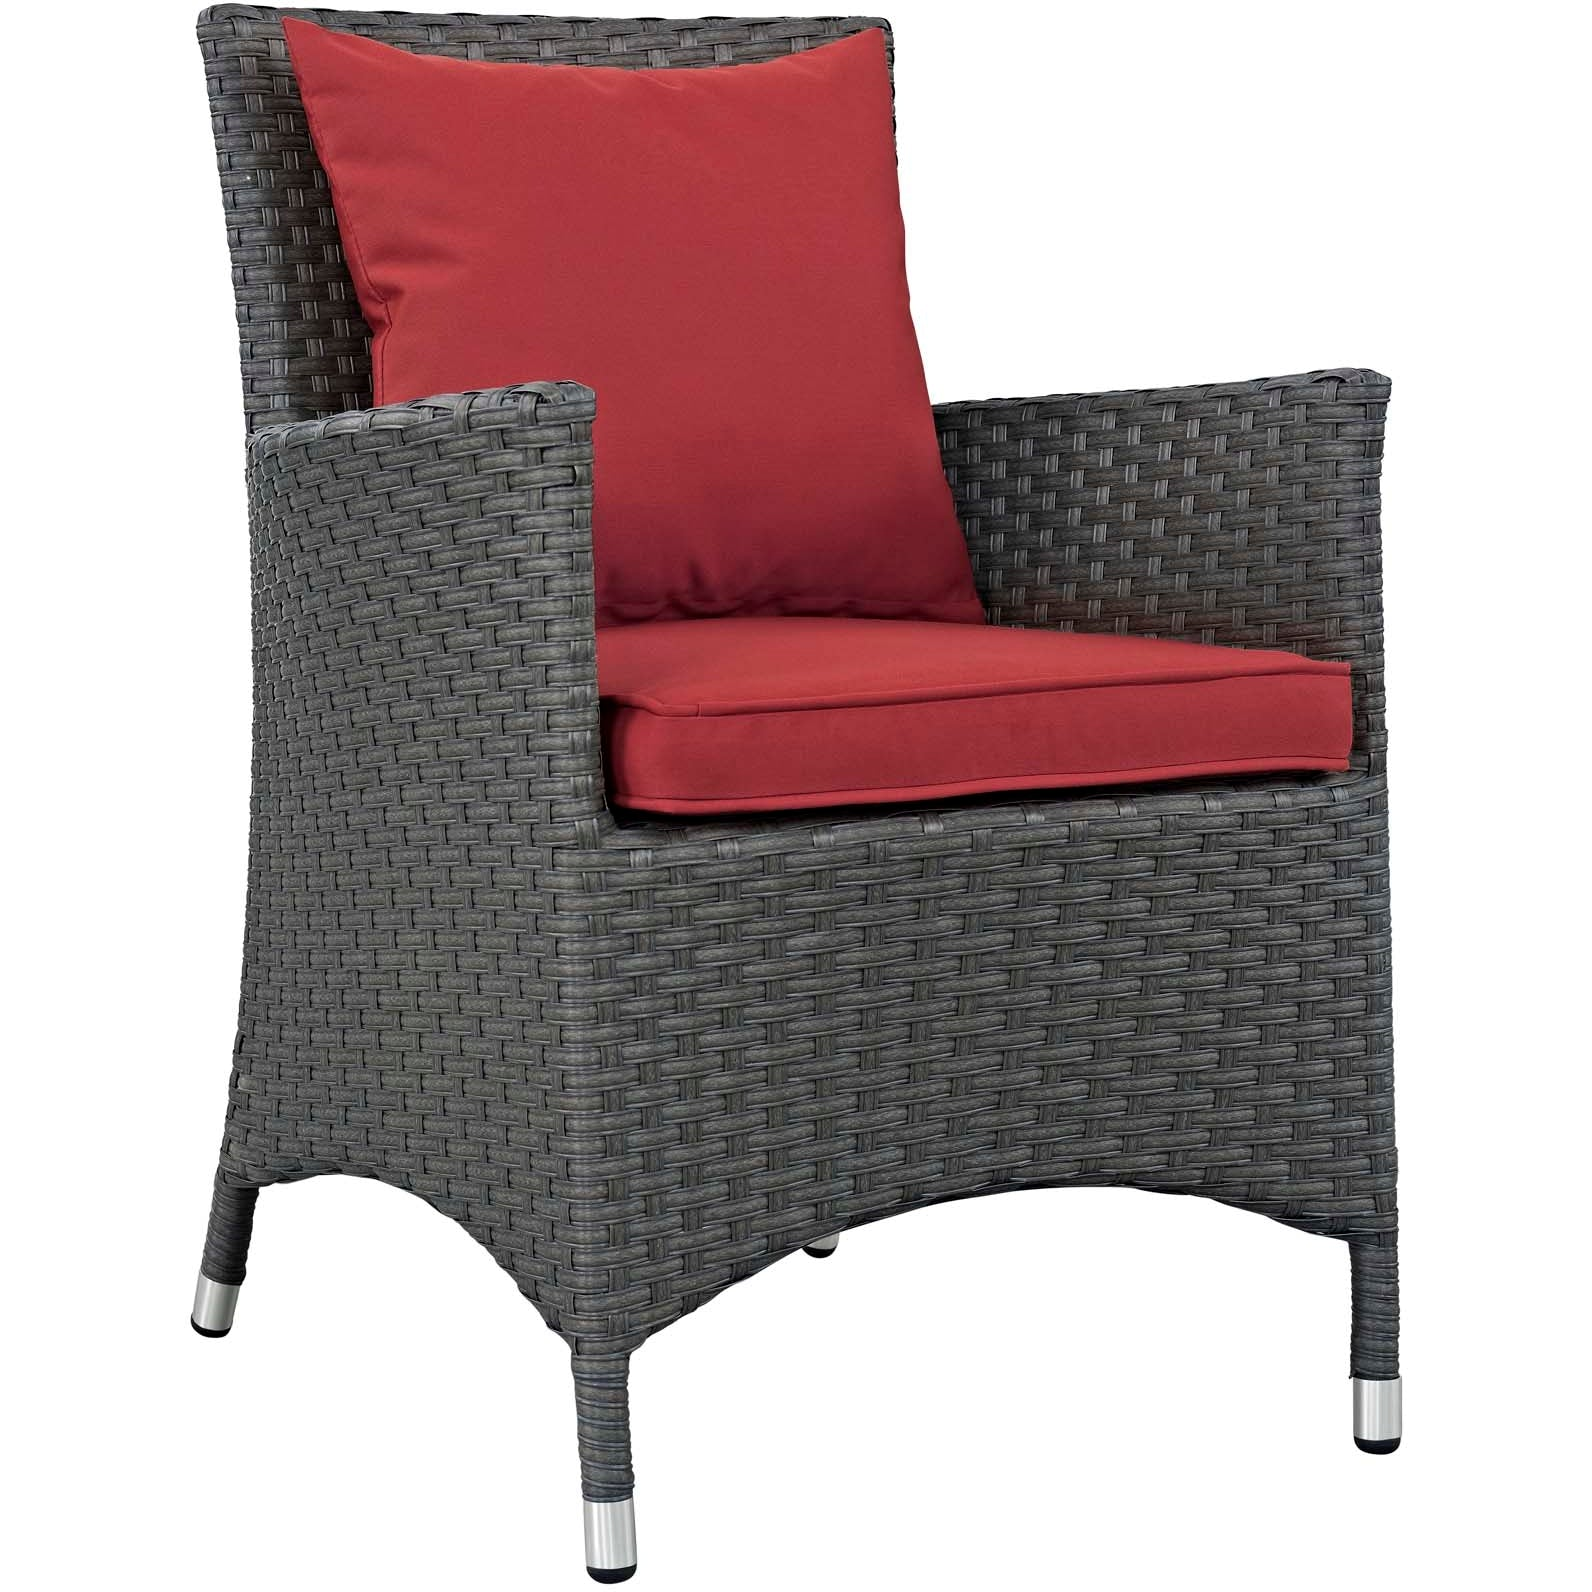 Sojourn 2 Piece Outdoor Patio Sunbrella® Dining Set - Canvas Red